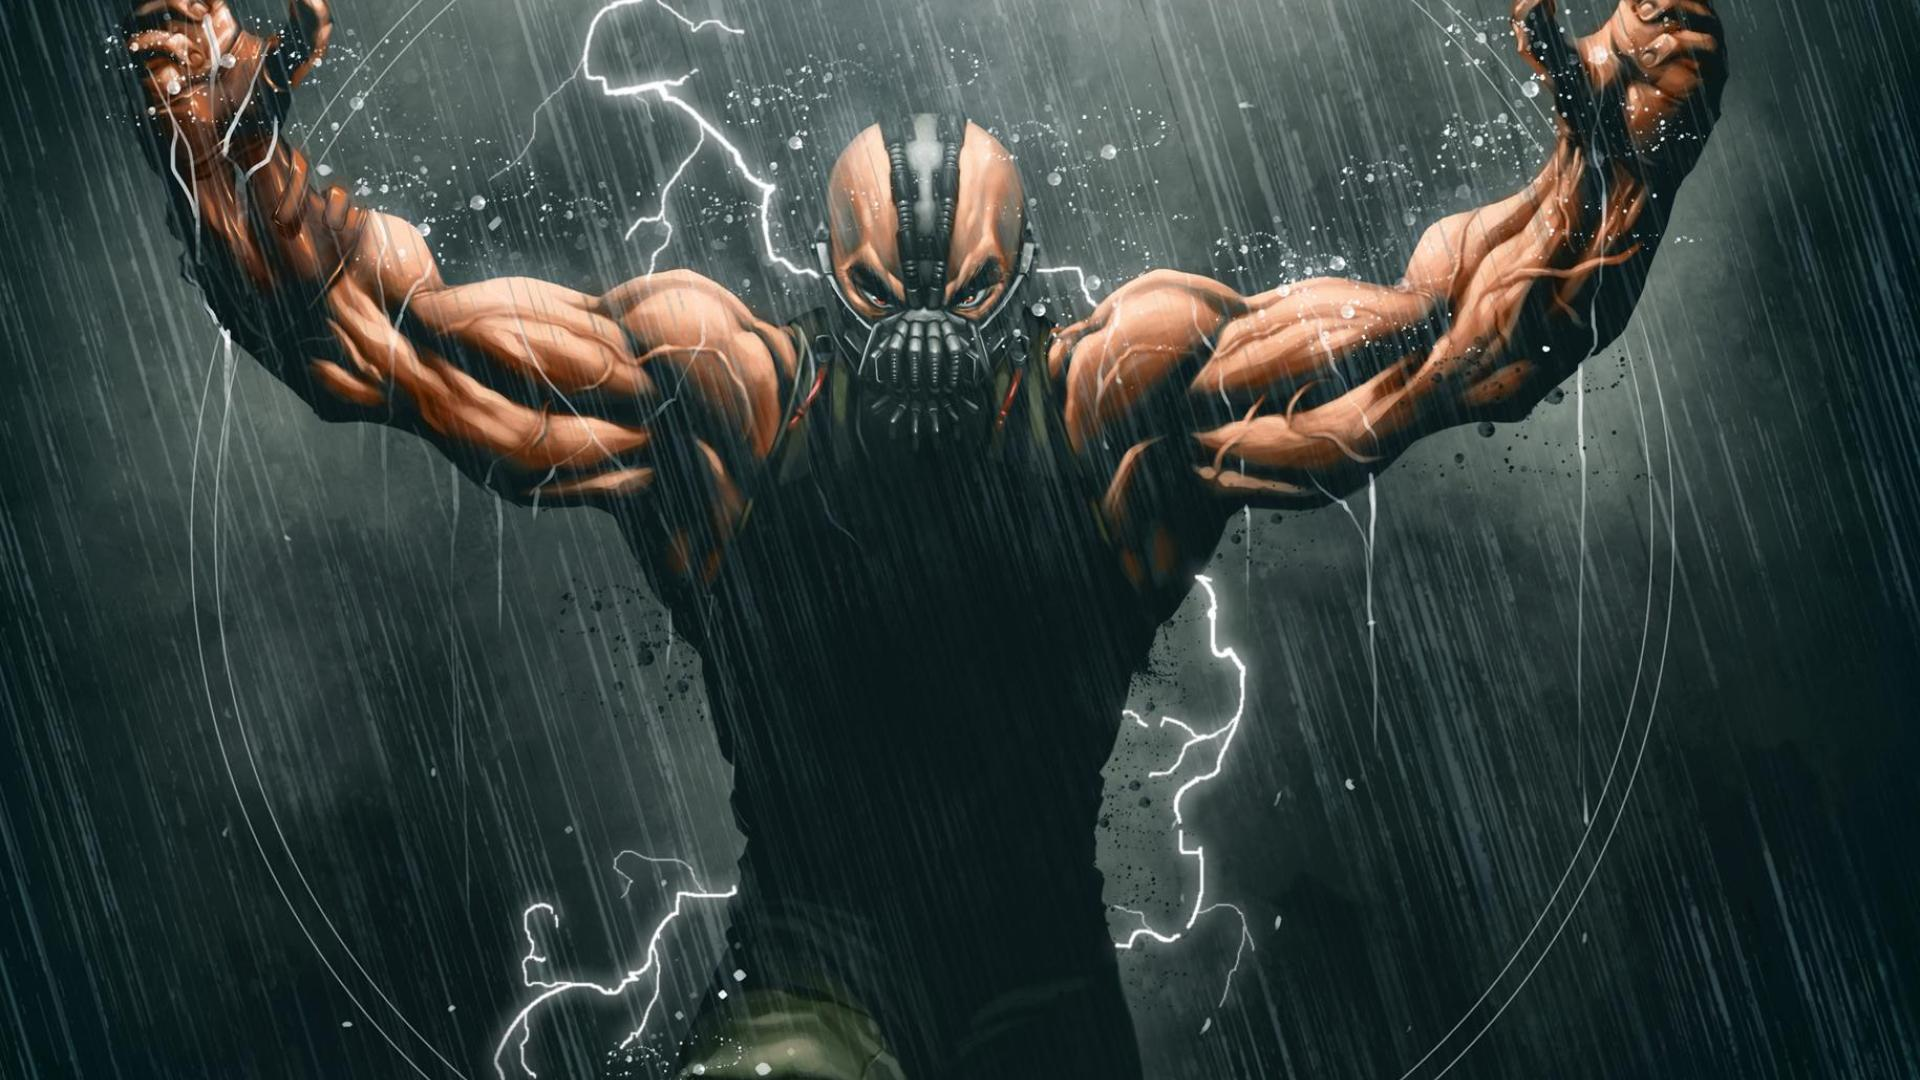 Bane Quotes Wallpapers Free Download Bane Hd Wallpapers Pixelstalk Net